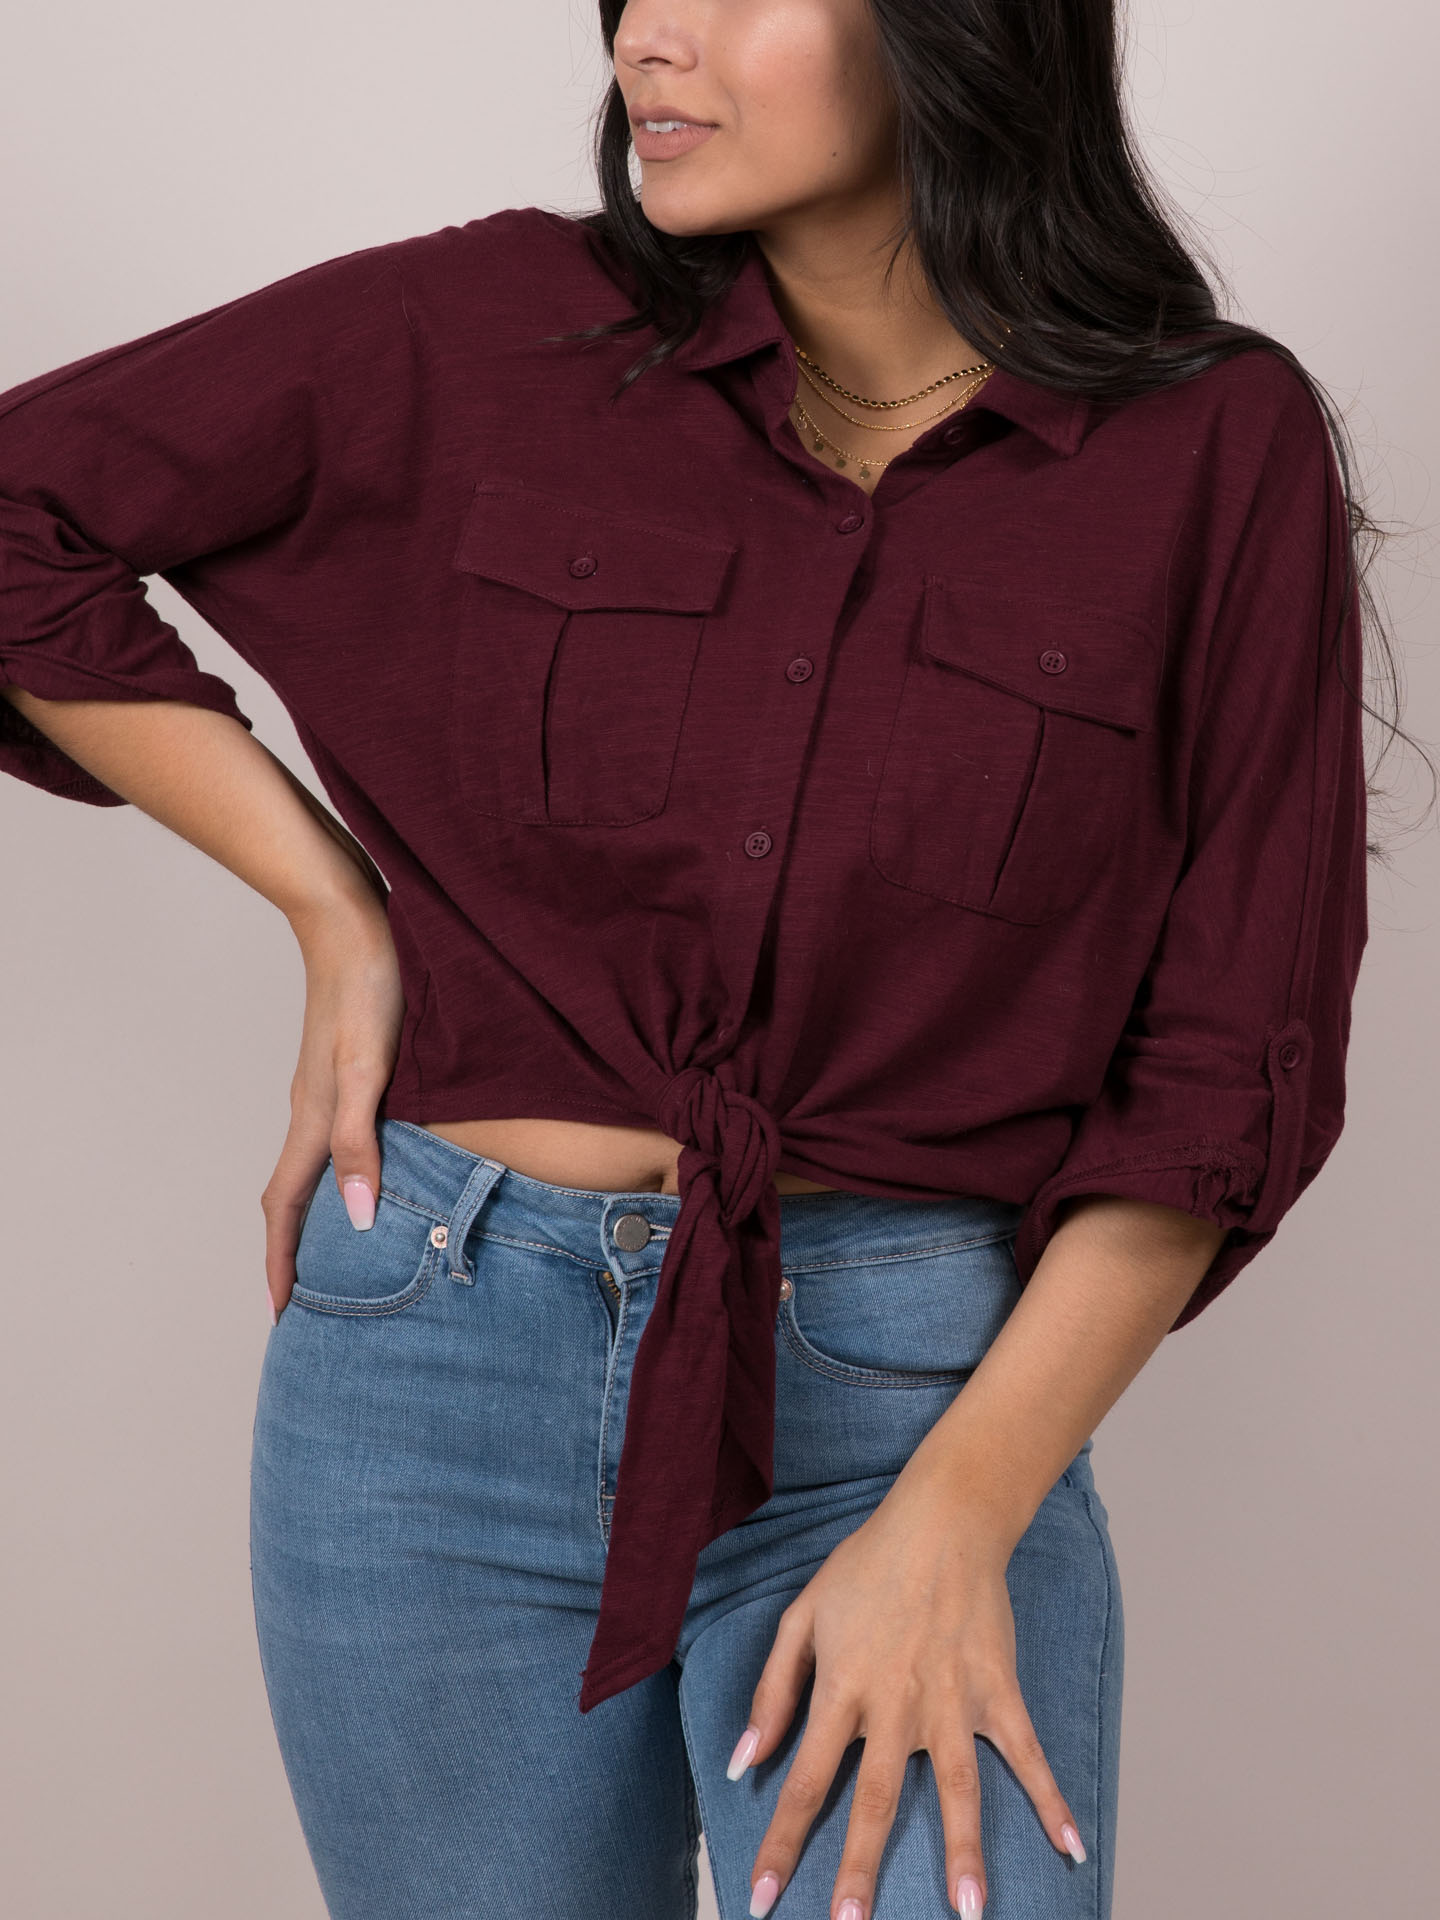 Stacey Top - Burgandy Button Up